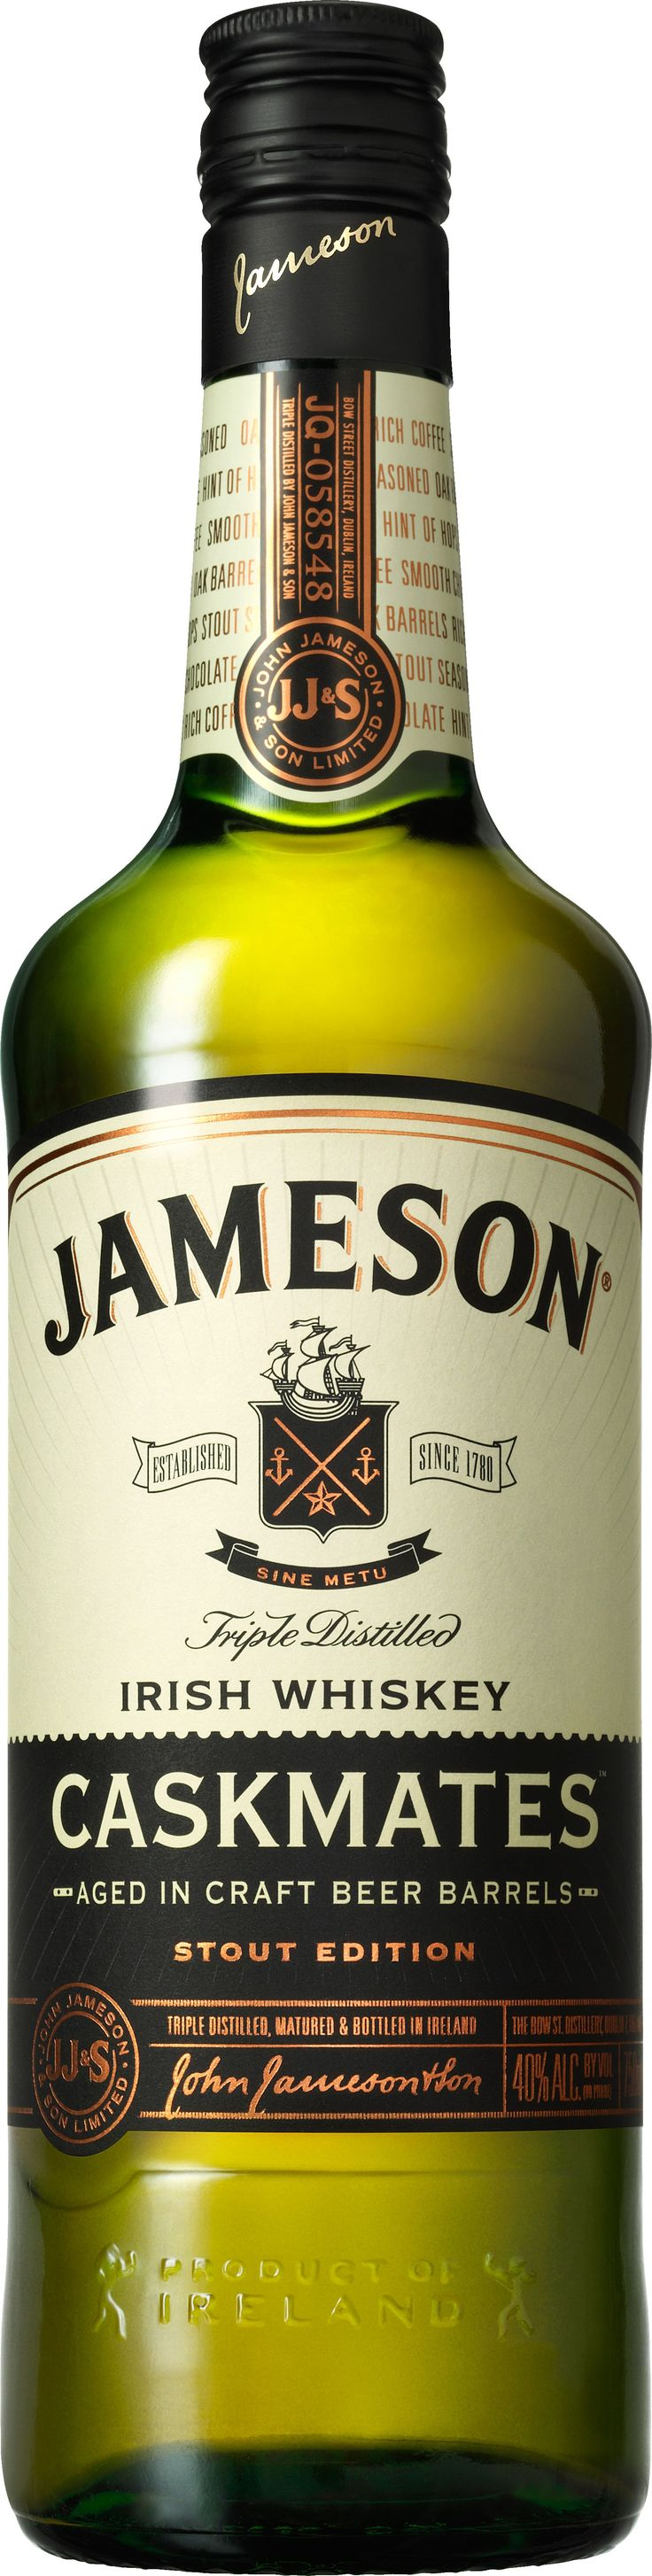 手机壳定制womens running sneakers with arch support Jameson Caskmates Irish Whiskey Stout Edition  Caskers